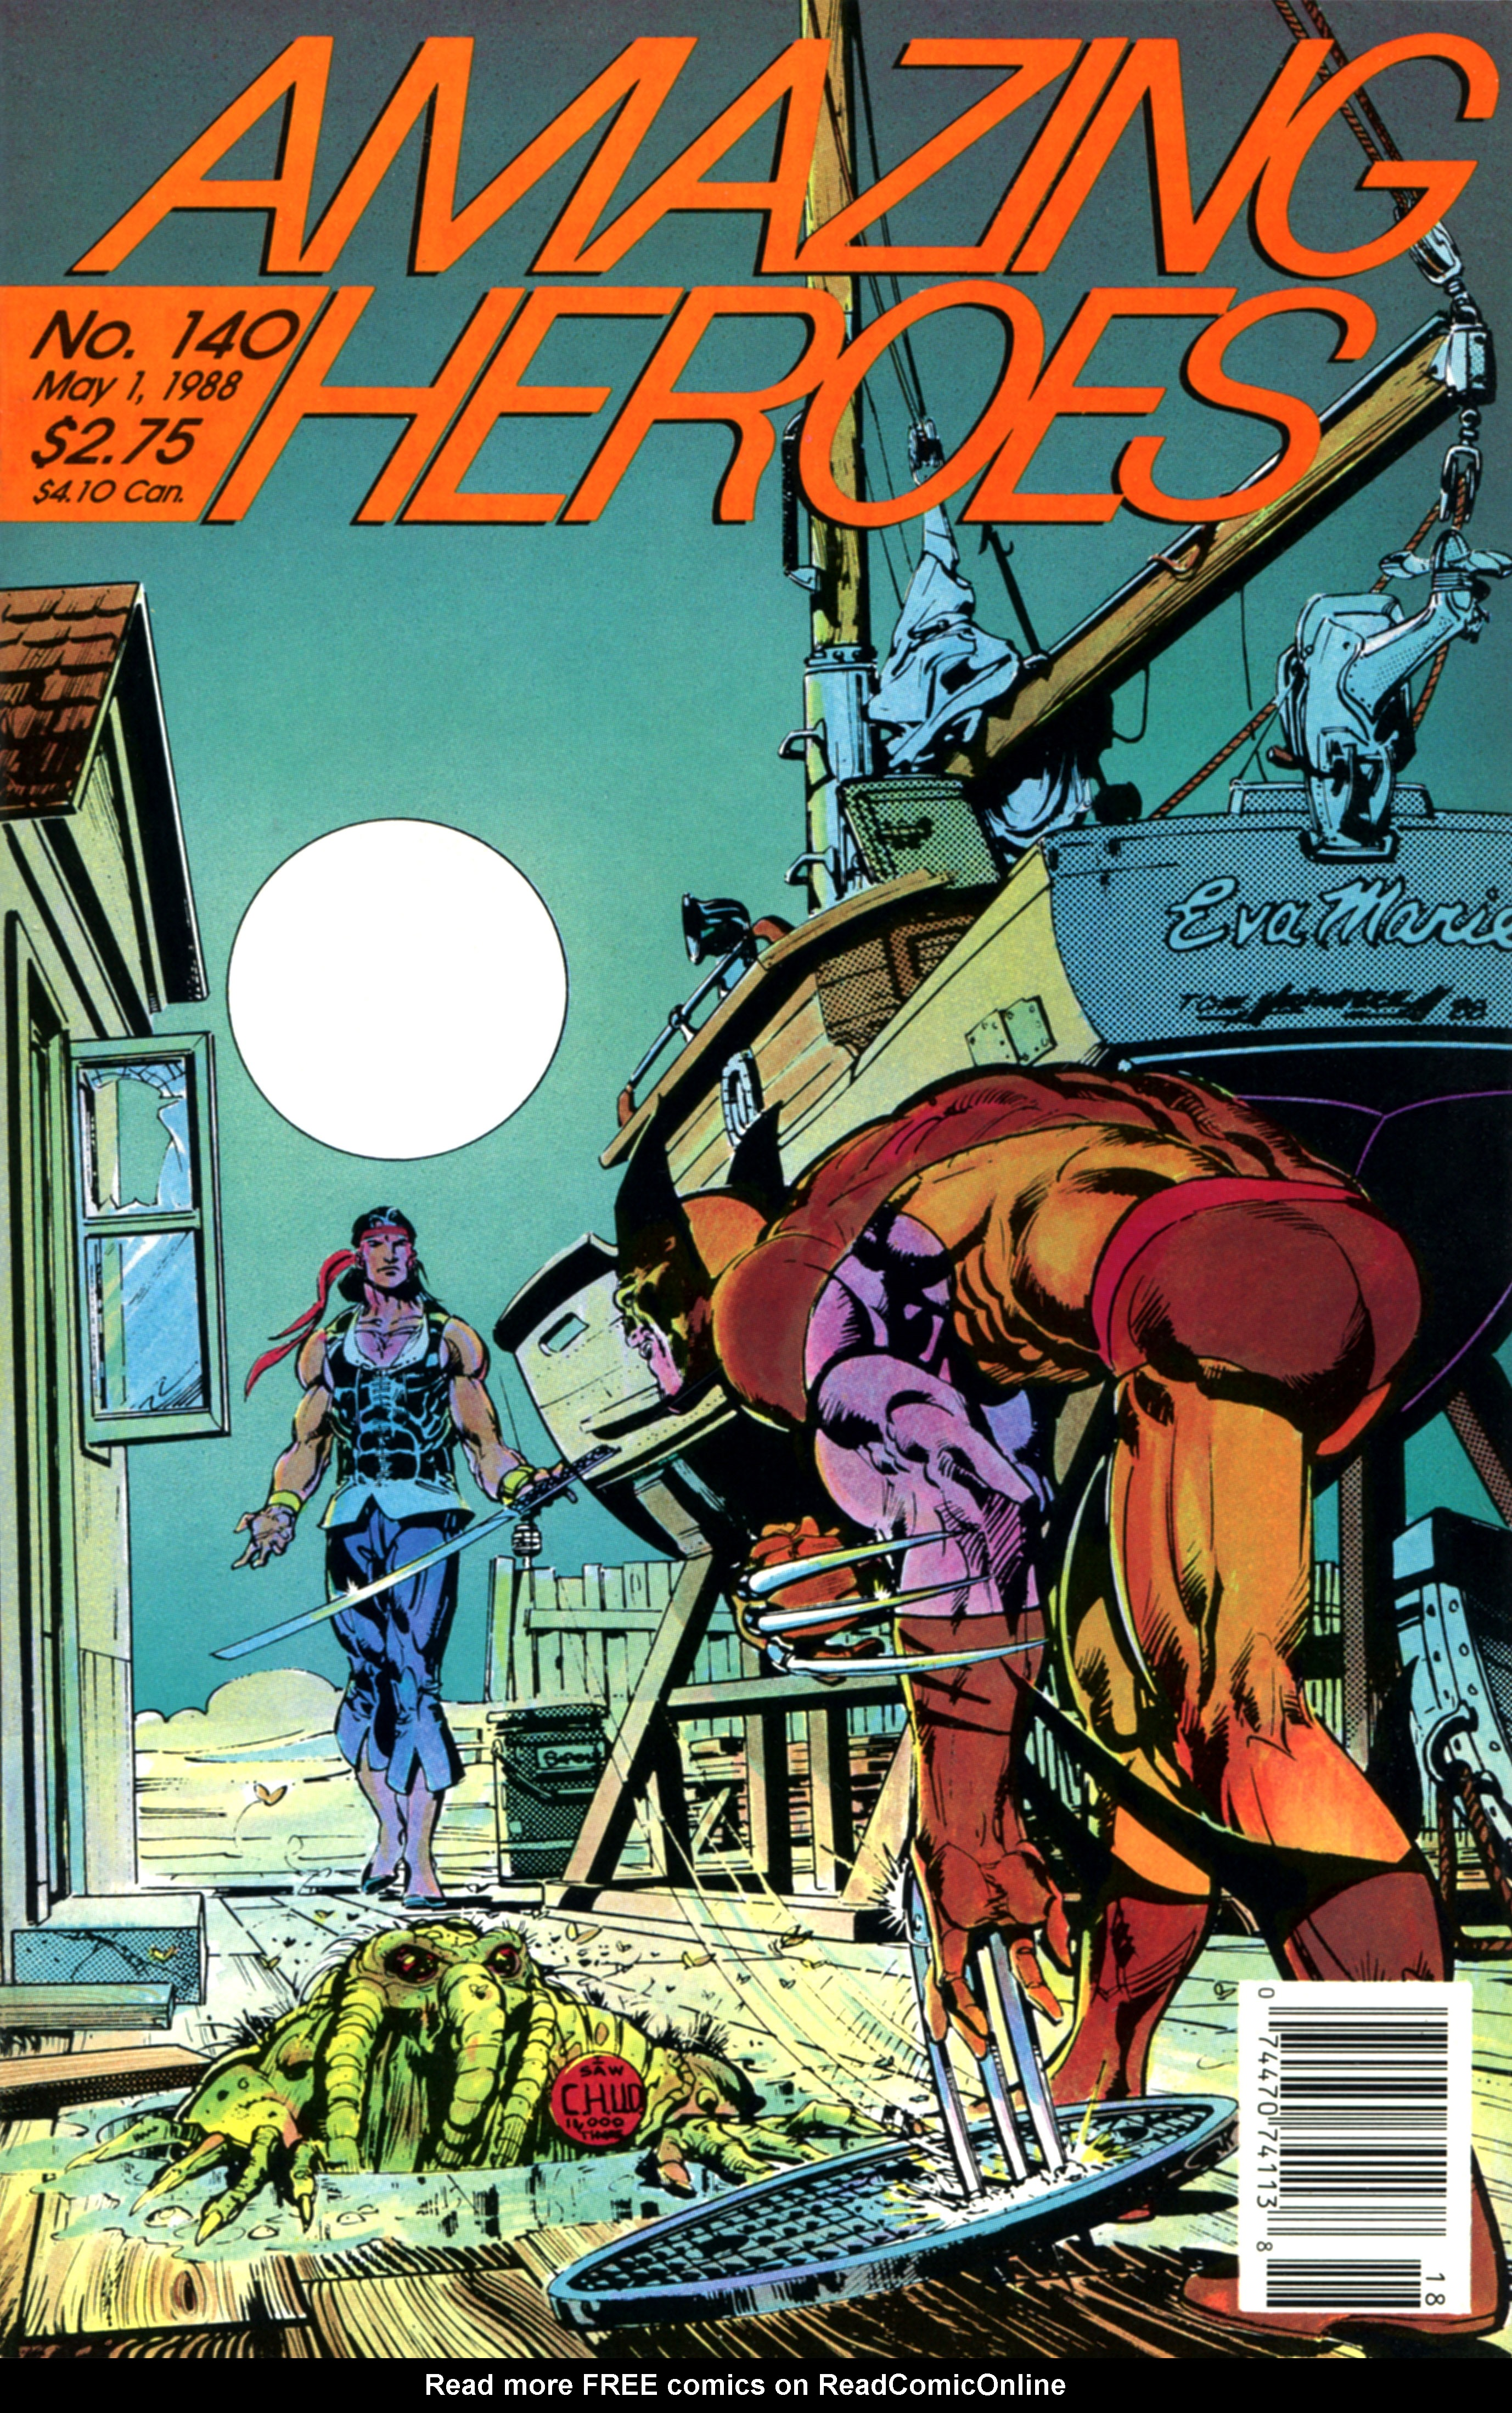 Read online Amazing Heroes comic -  Issue #140 - 1